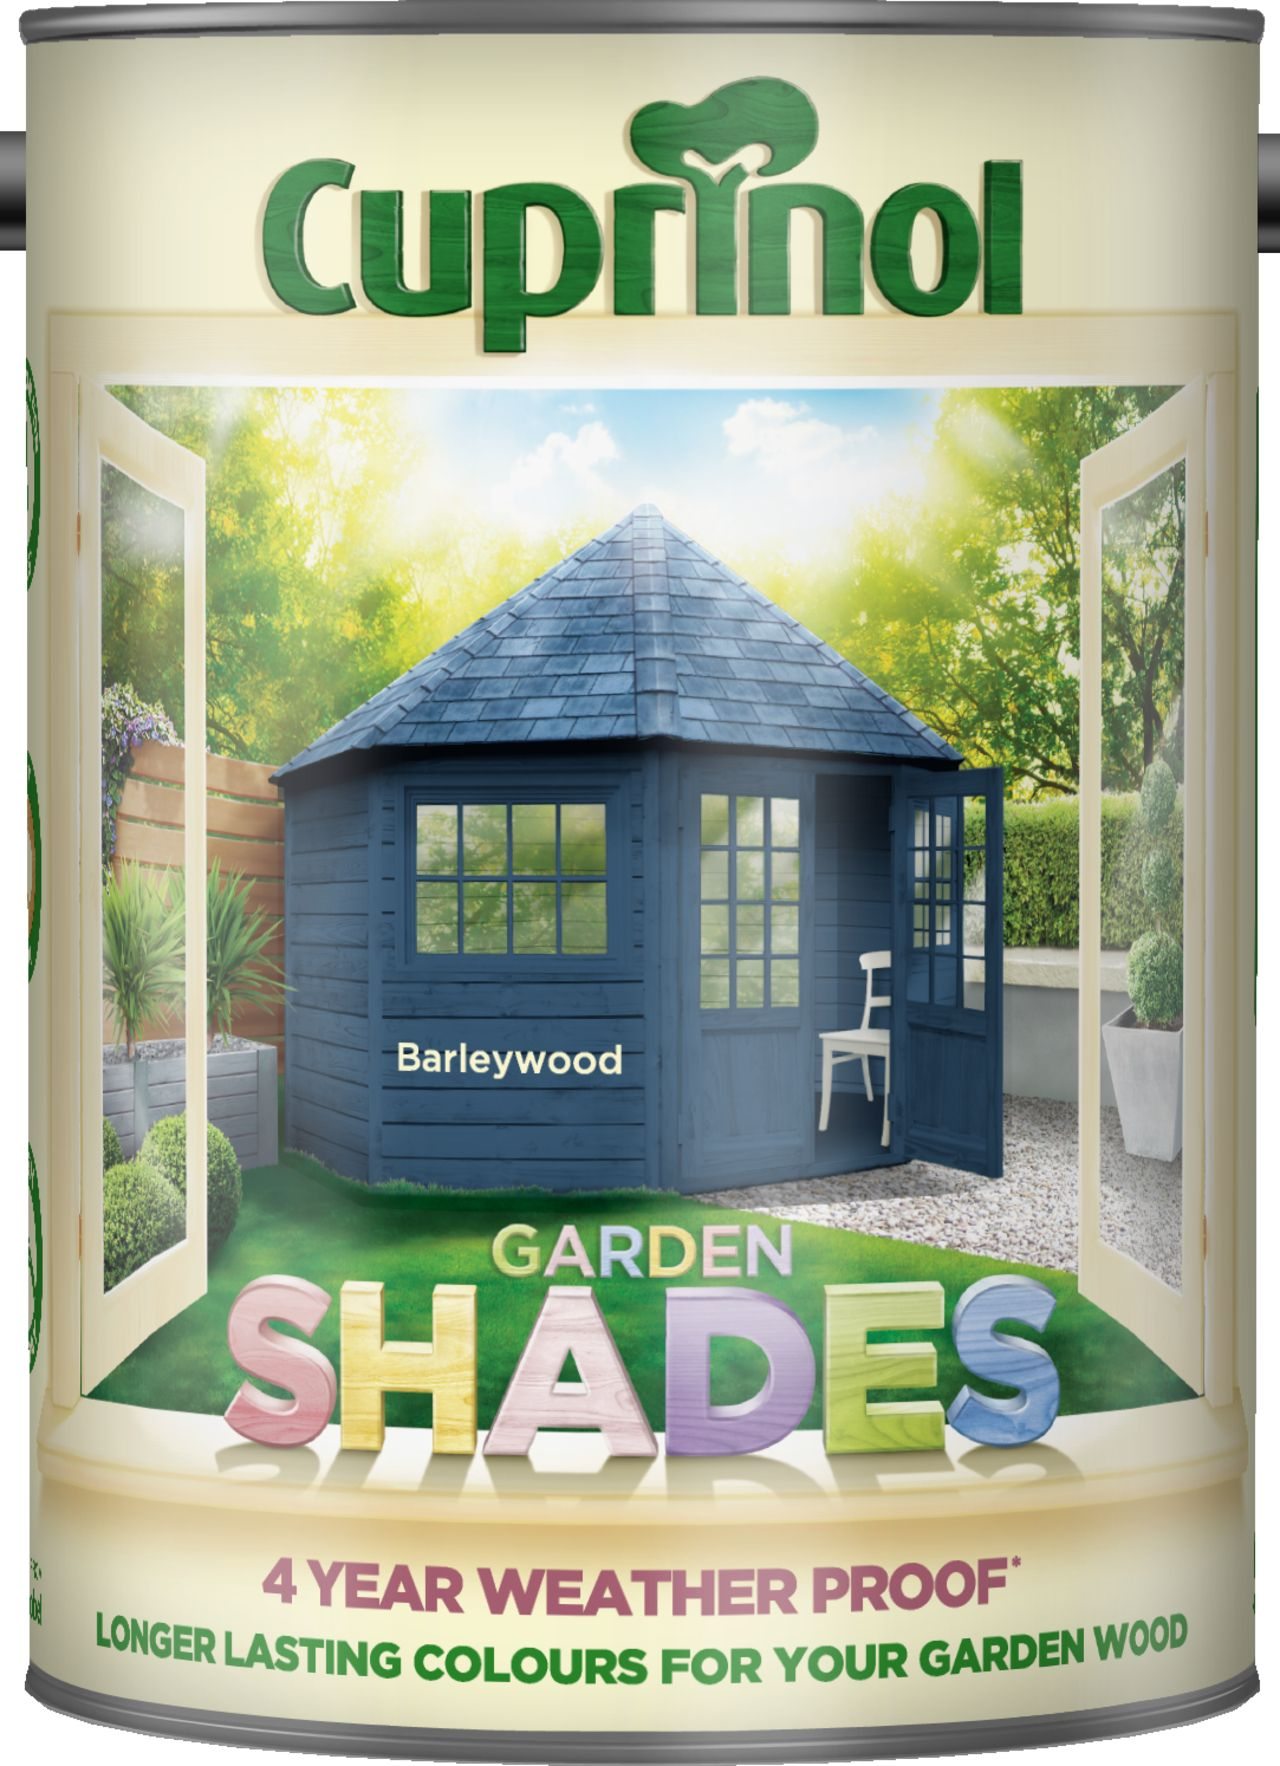 Ravishing Cuprinol Garden Shades L With Heavenly Bikini Wax Covent Garden Besides Garden Clearance Hull Furthermore Covent Garden Office With Divine Bamboo Garden Banbury Also Tatton Park Gardens In Addition Garden Metal Wall Art And Garden Cushions Pads As Well As Brindavan Gardens Additionally My Secret Garden Nancy Friday From Toolspaintcom With   Heavenly Cuprinol Garden Shades L With Divine Bikini Wax Covent Garden Besides Garden Clearance Hull Furthermore Covent Garden Office And Ravishing Bamboo Garden Banbury Also Tatton Park Gardens In Addition Garden Metal Wall Art From Toolspaintcom